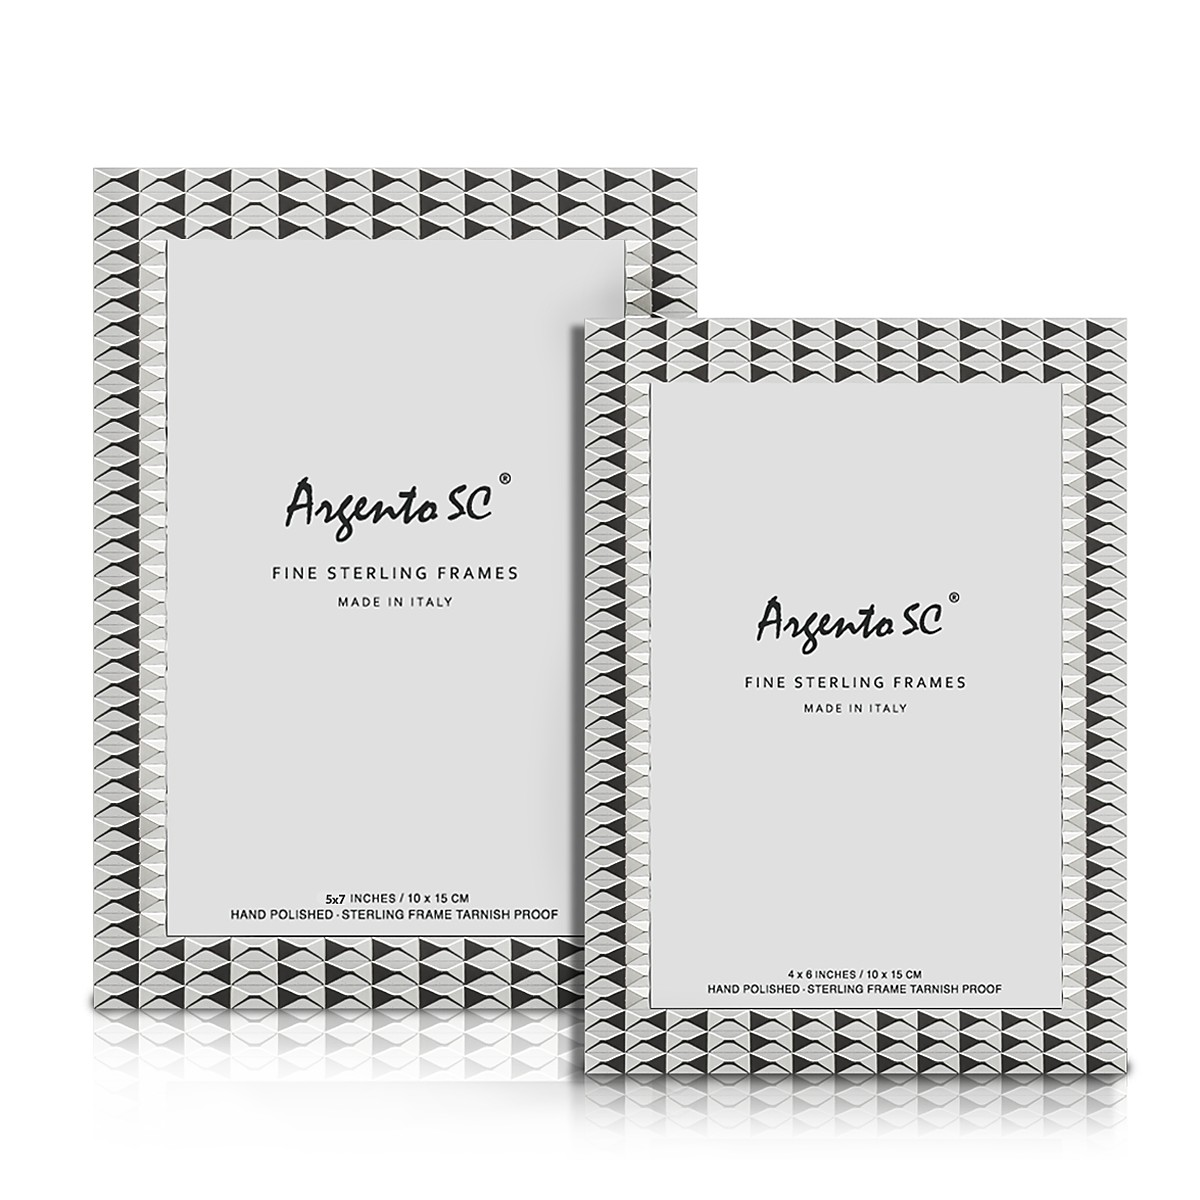 Portofino by Argento Silver Mascagni Frames | Bloomingdale\'s